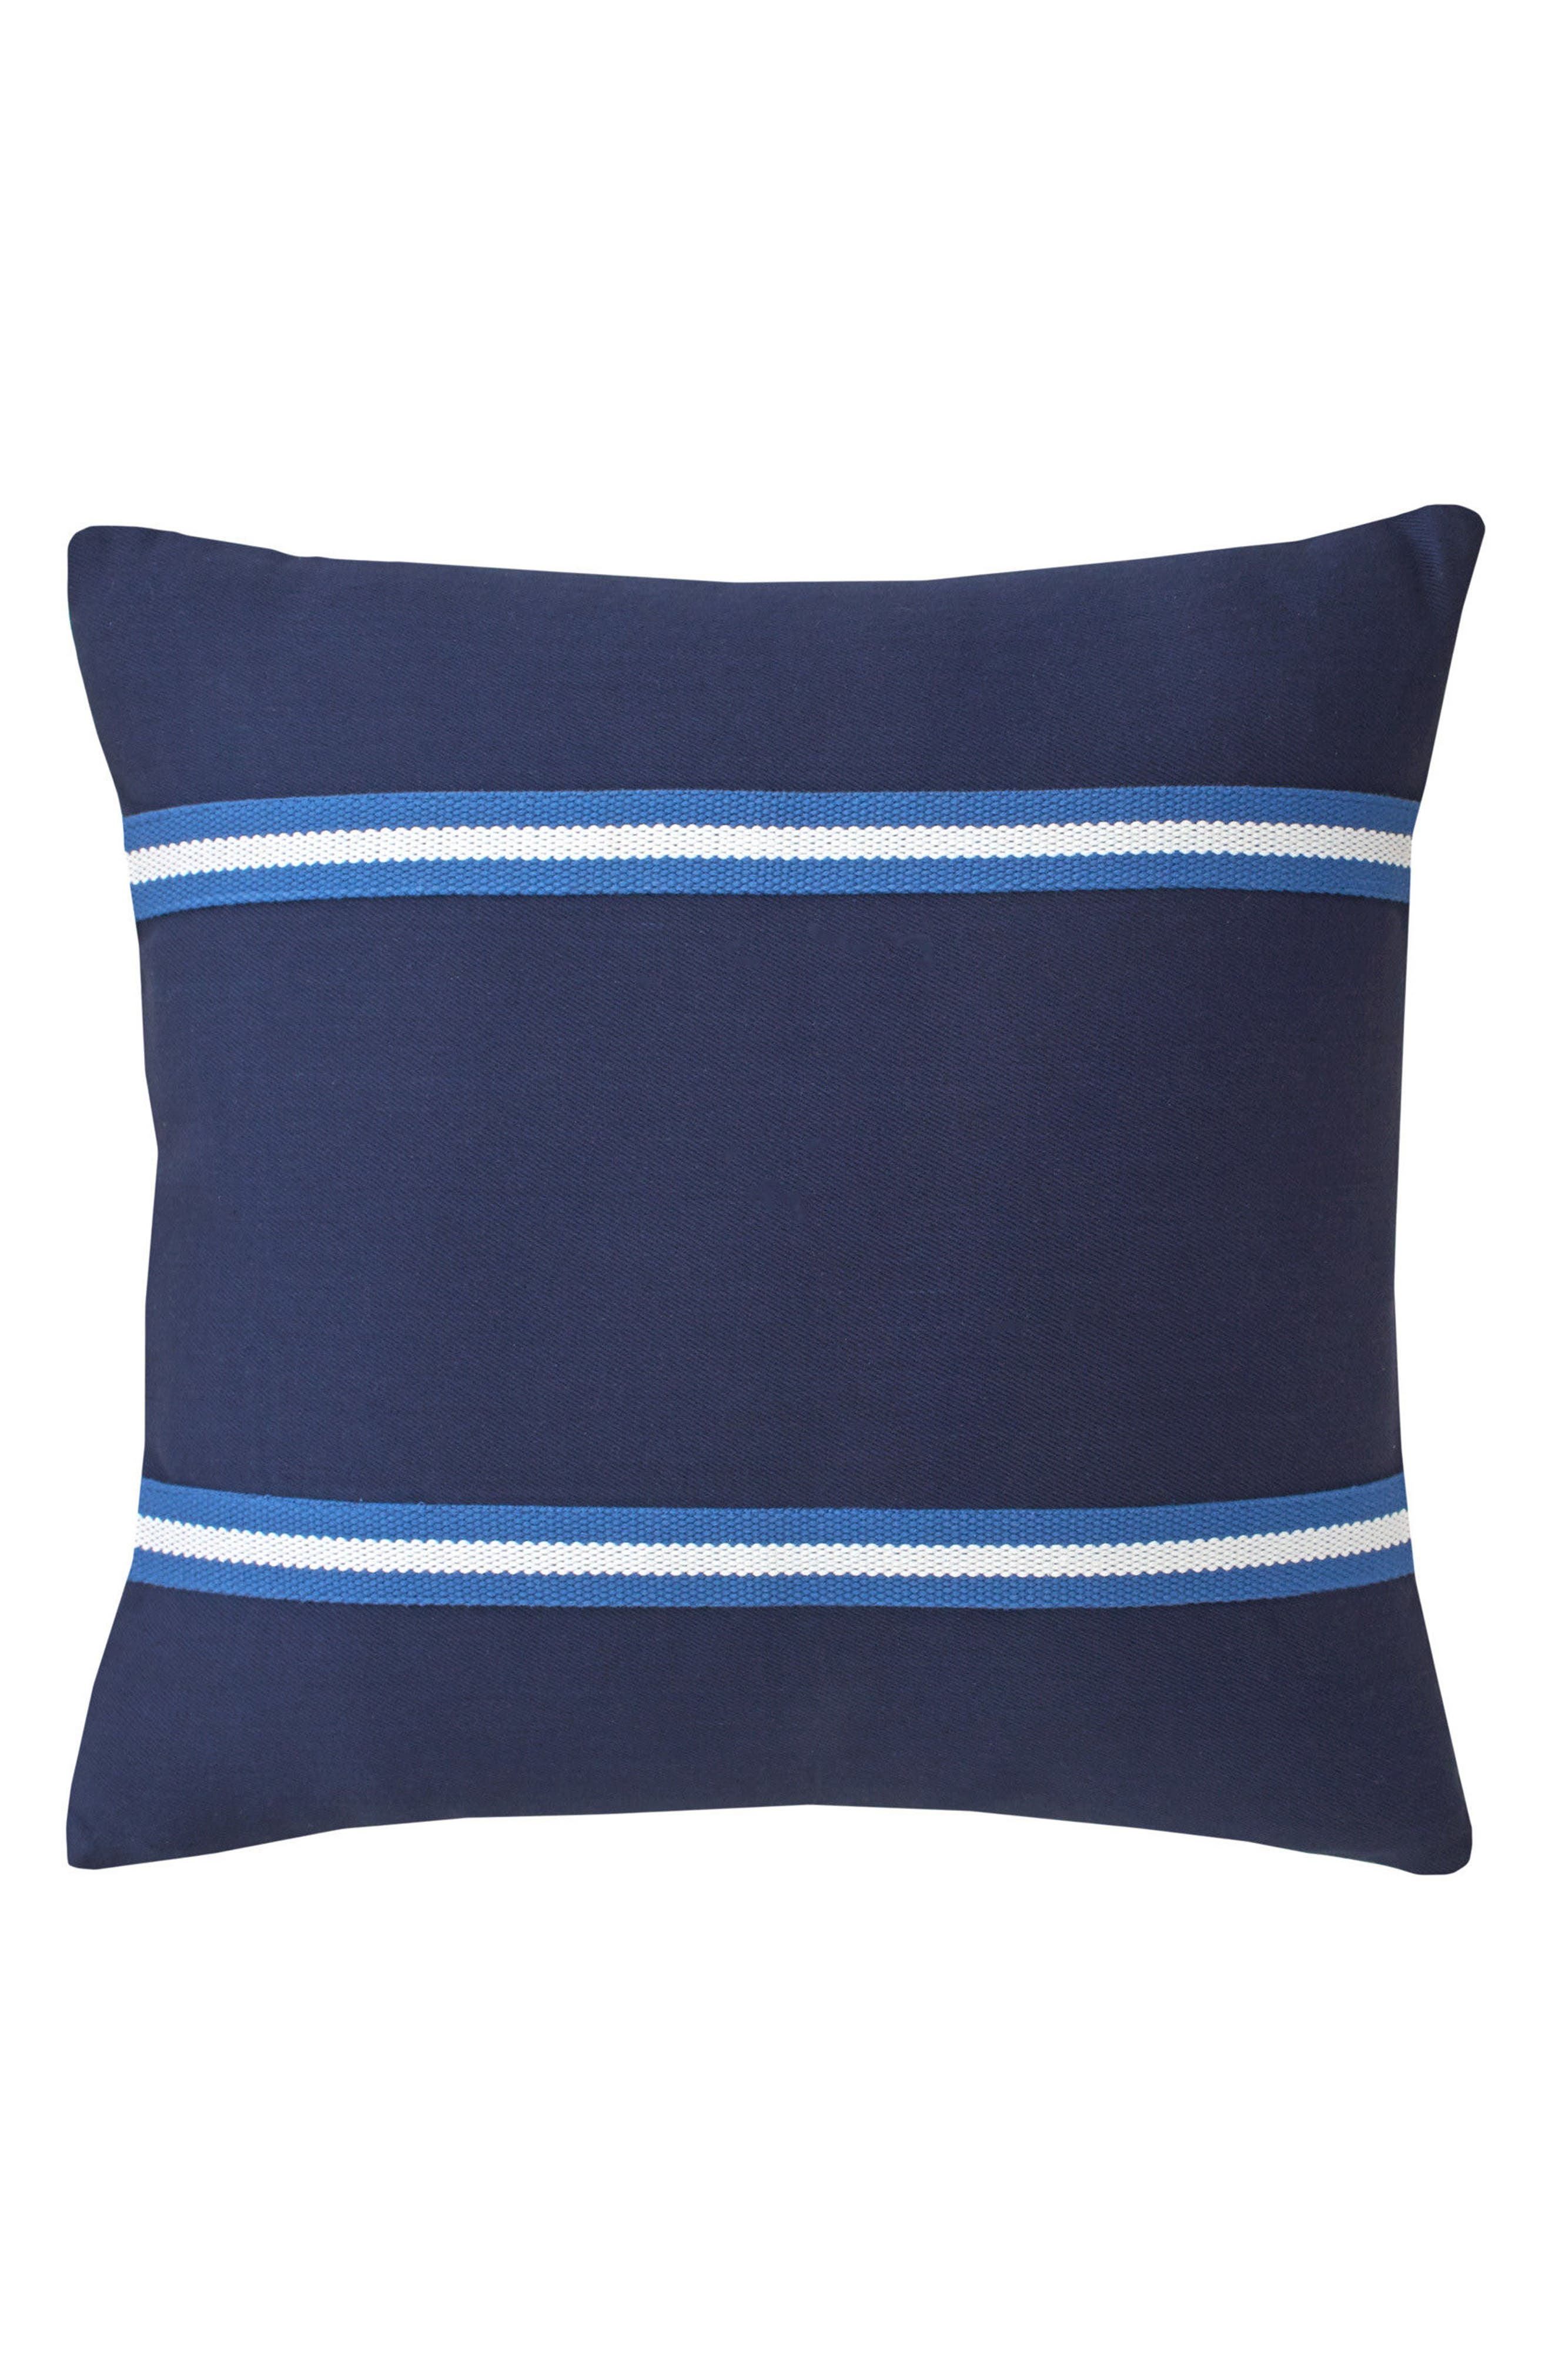 Dock Street Stripe Tape Accent Pillow,                             Main thumbnail 1, color,                             400